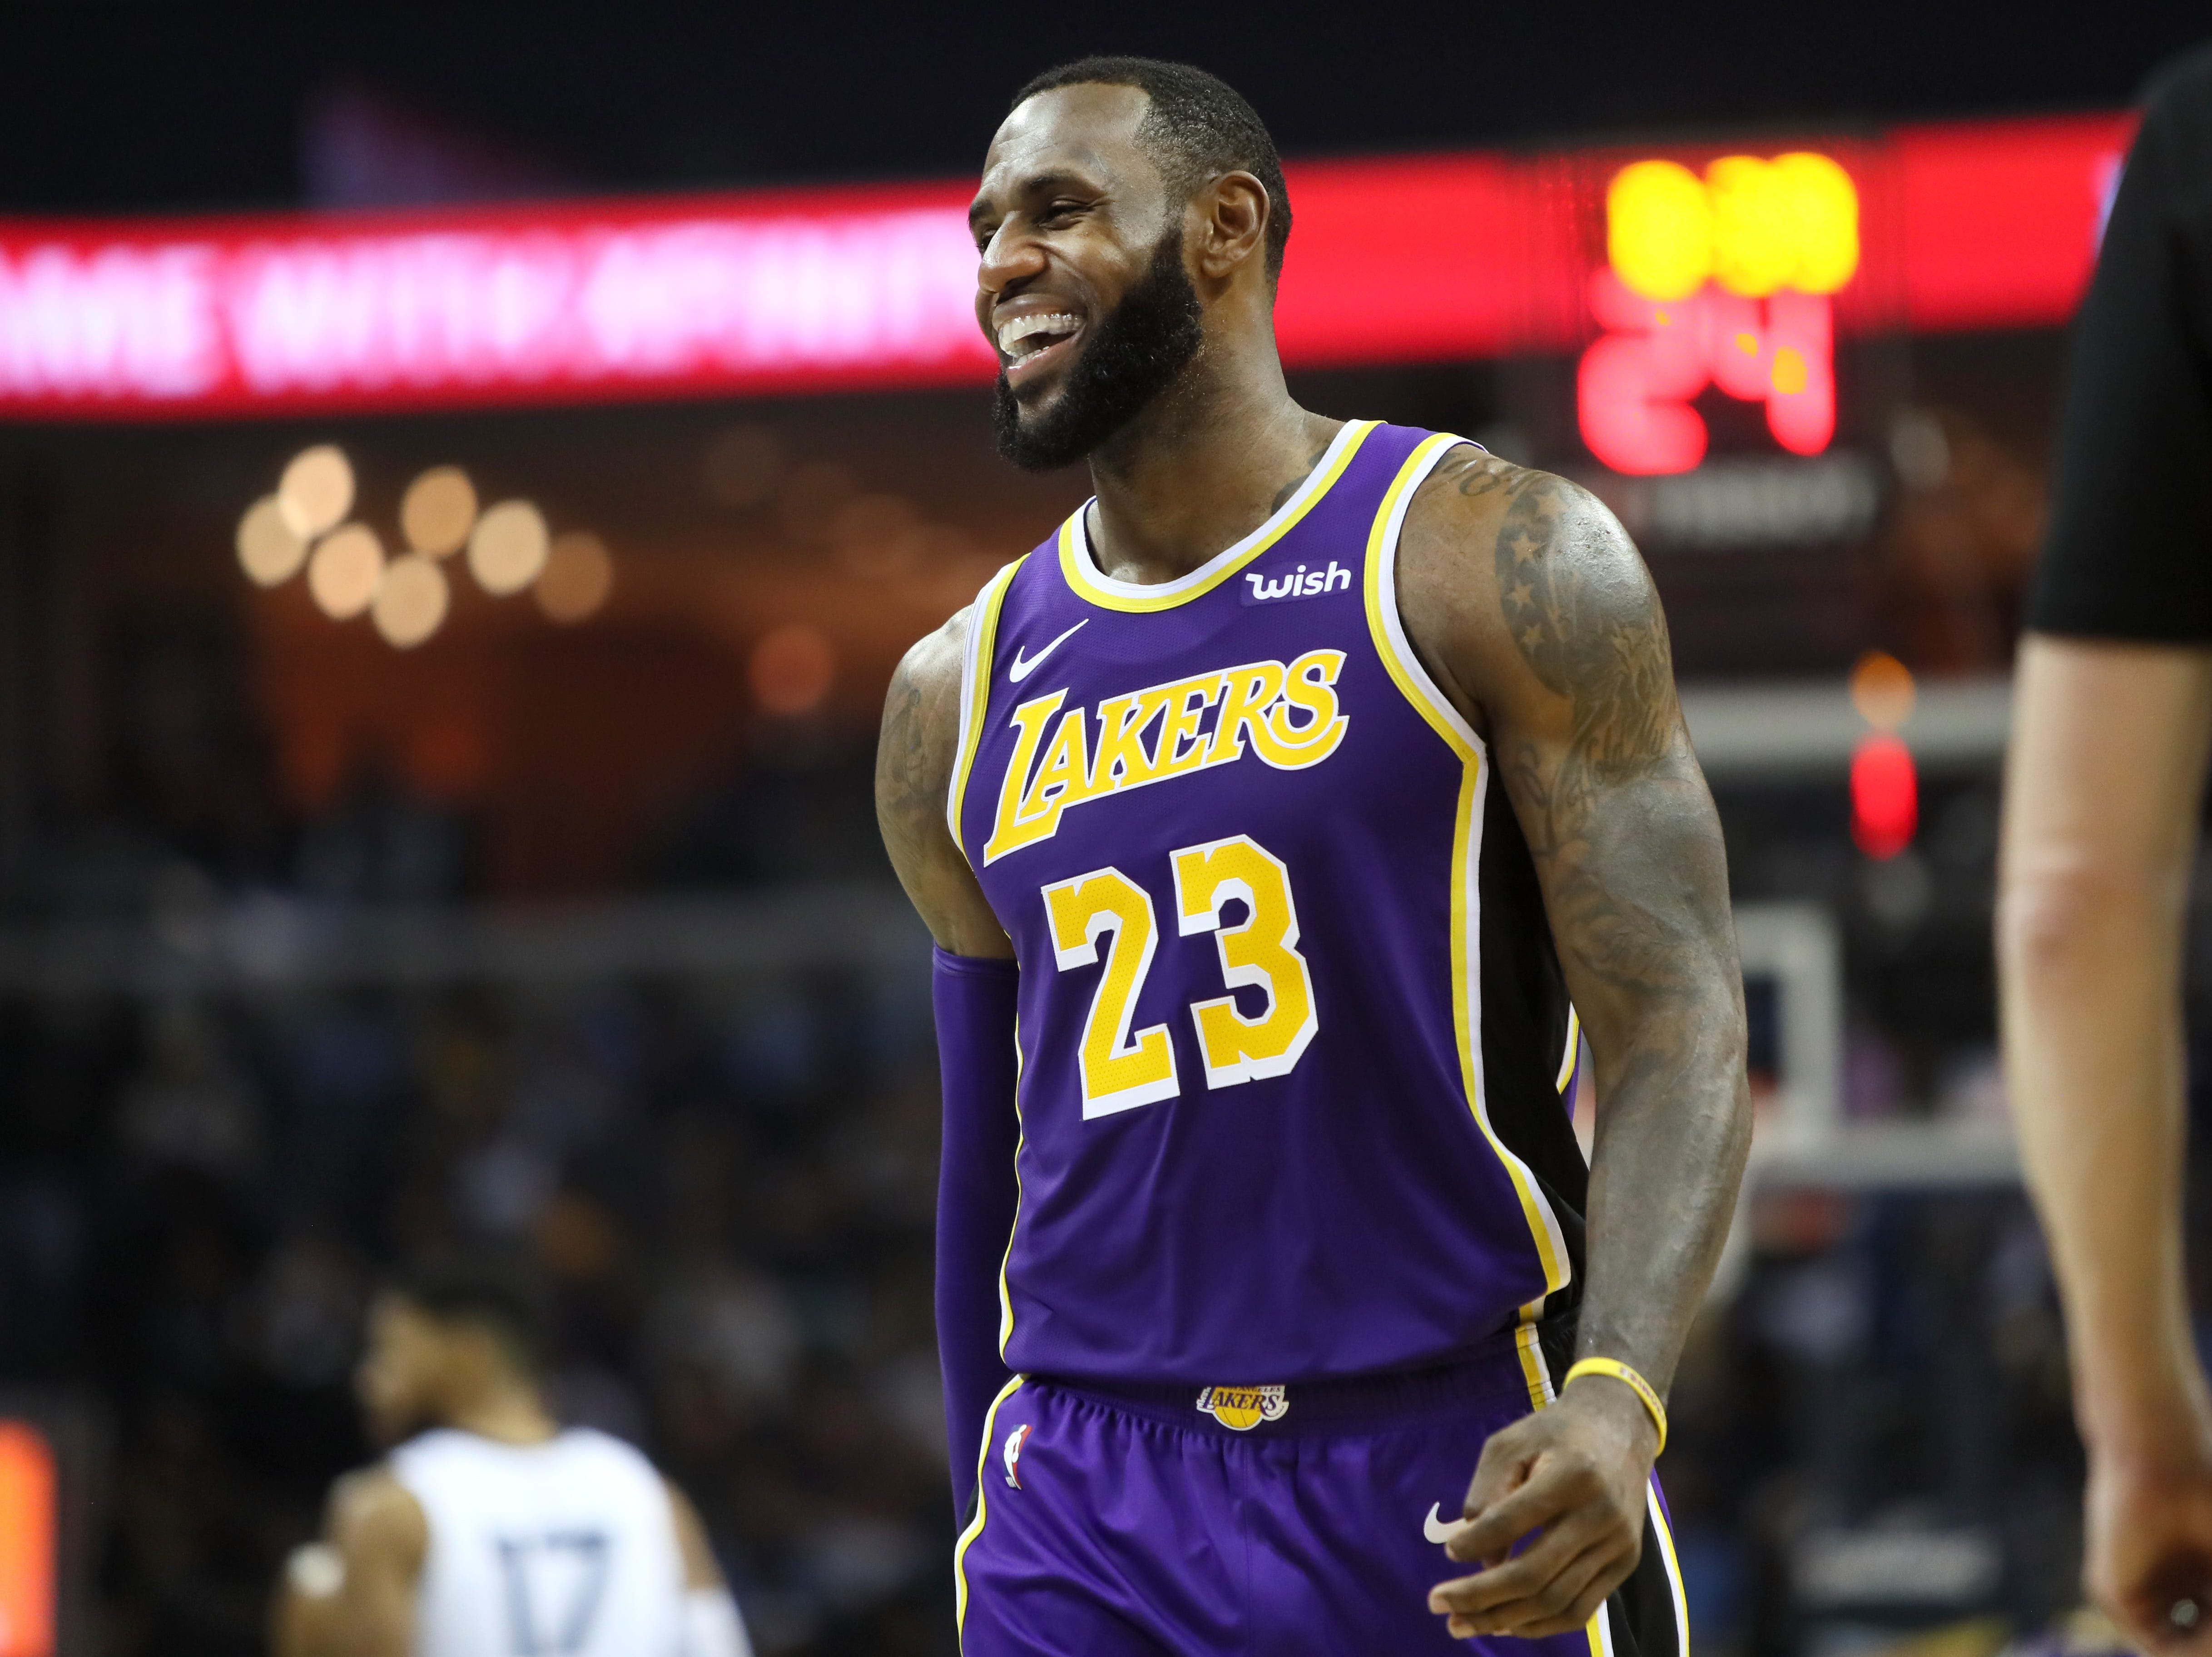 Los Angeles Lakers forward LeBron James smiles as his team takes on the Memphis Grizzlies at the FedExForum on Saturday, Dec. 8, 2018.